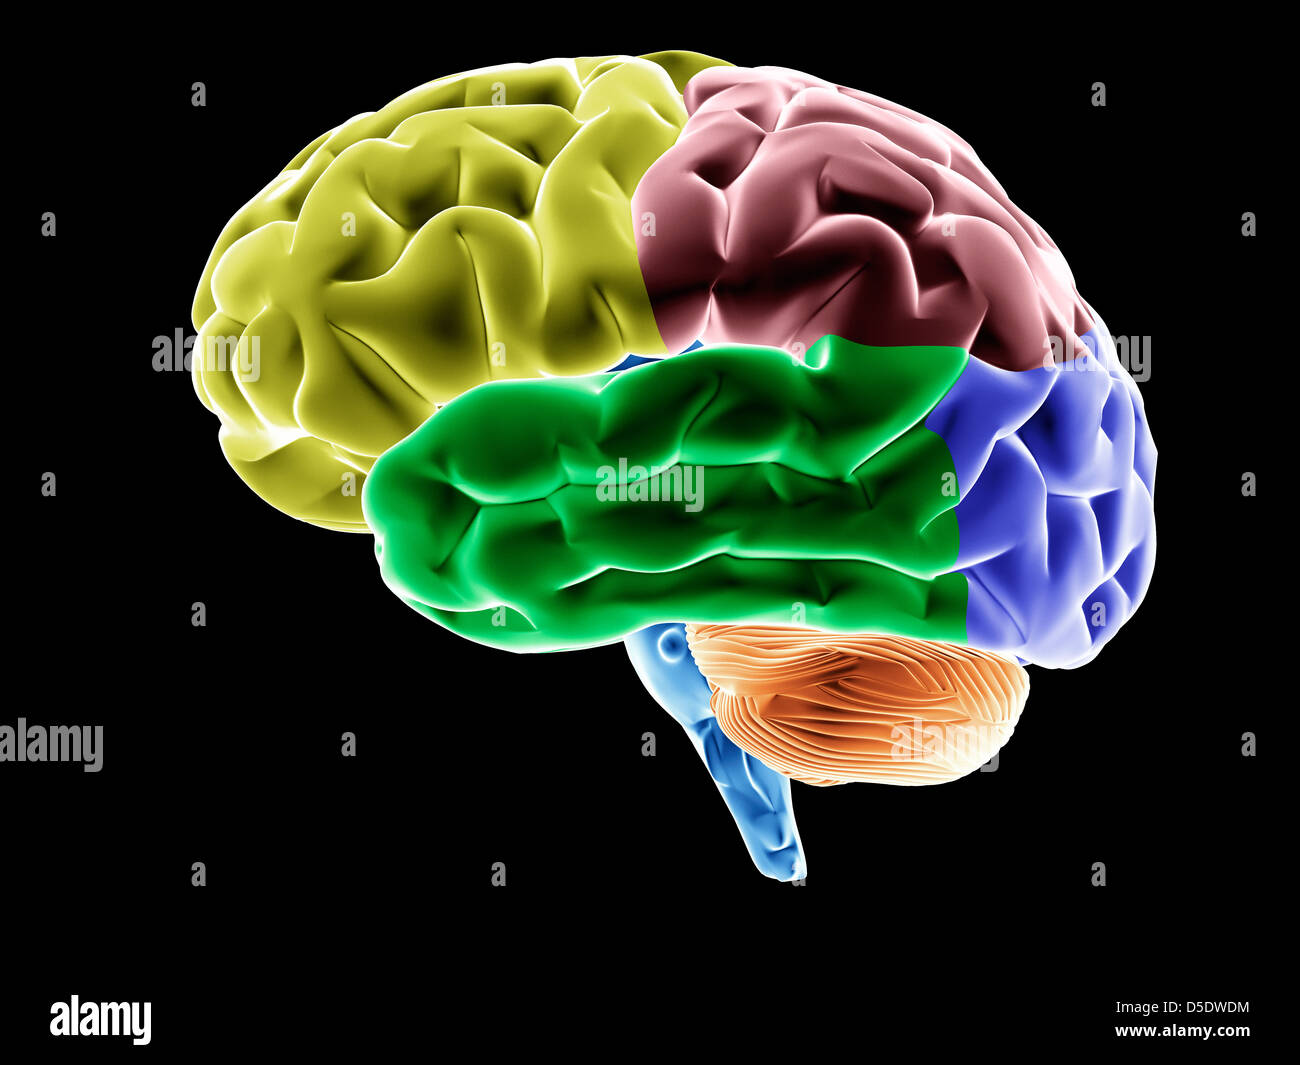 Model Of A Brain Cerebral Lobes In Different Colors